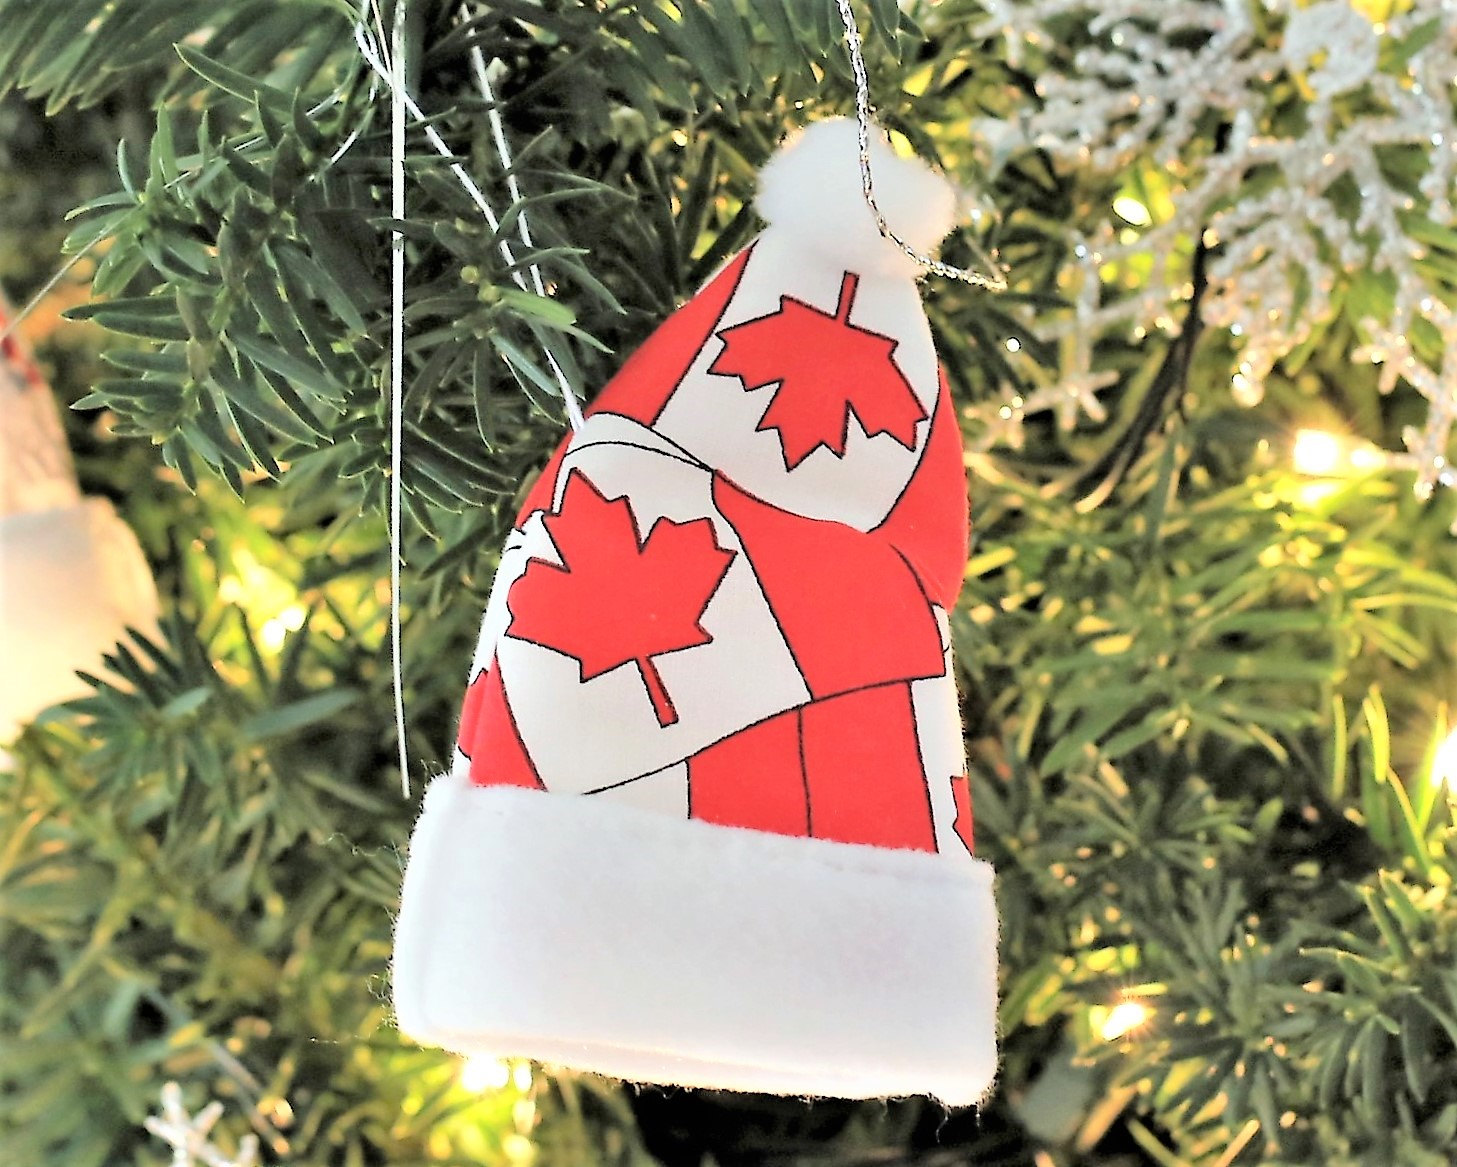 canada ornament canadian gift for christmas canadian christmas decorations christmas ornaments canadian baby maple leaf canada flag ornament - Christmas Decorations Canada